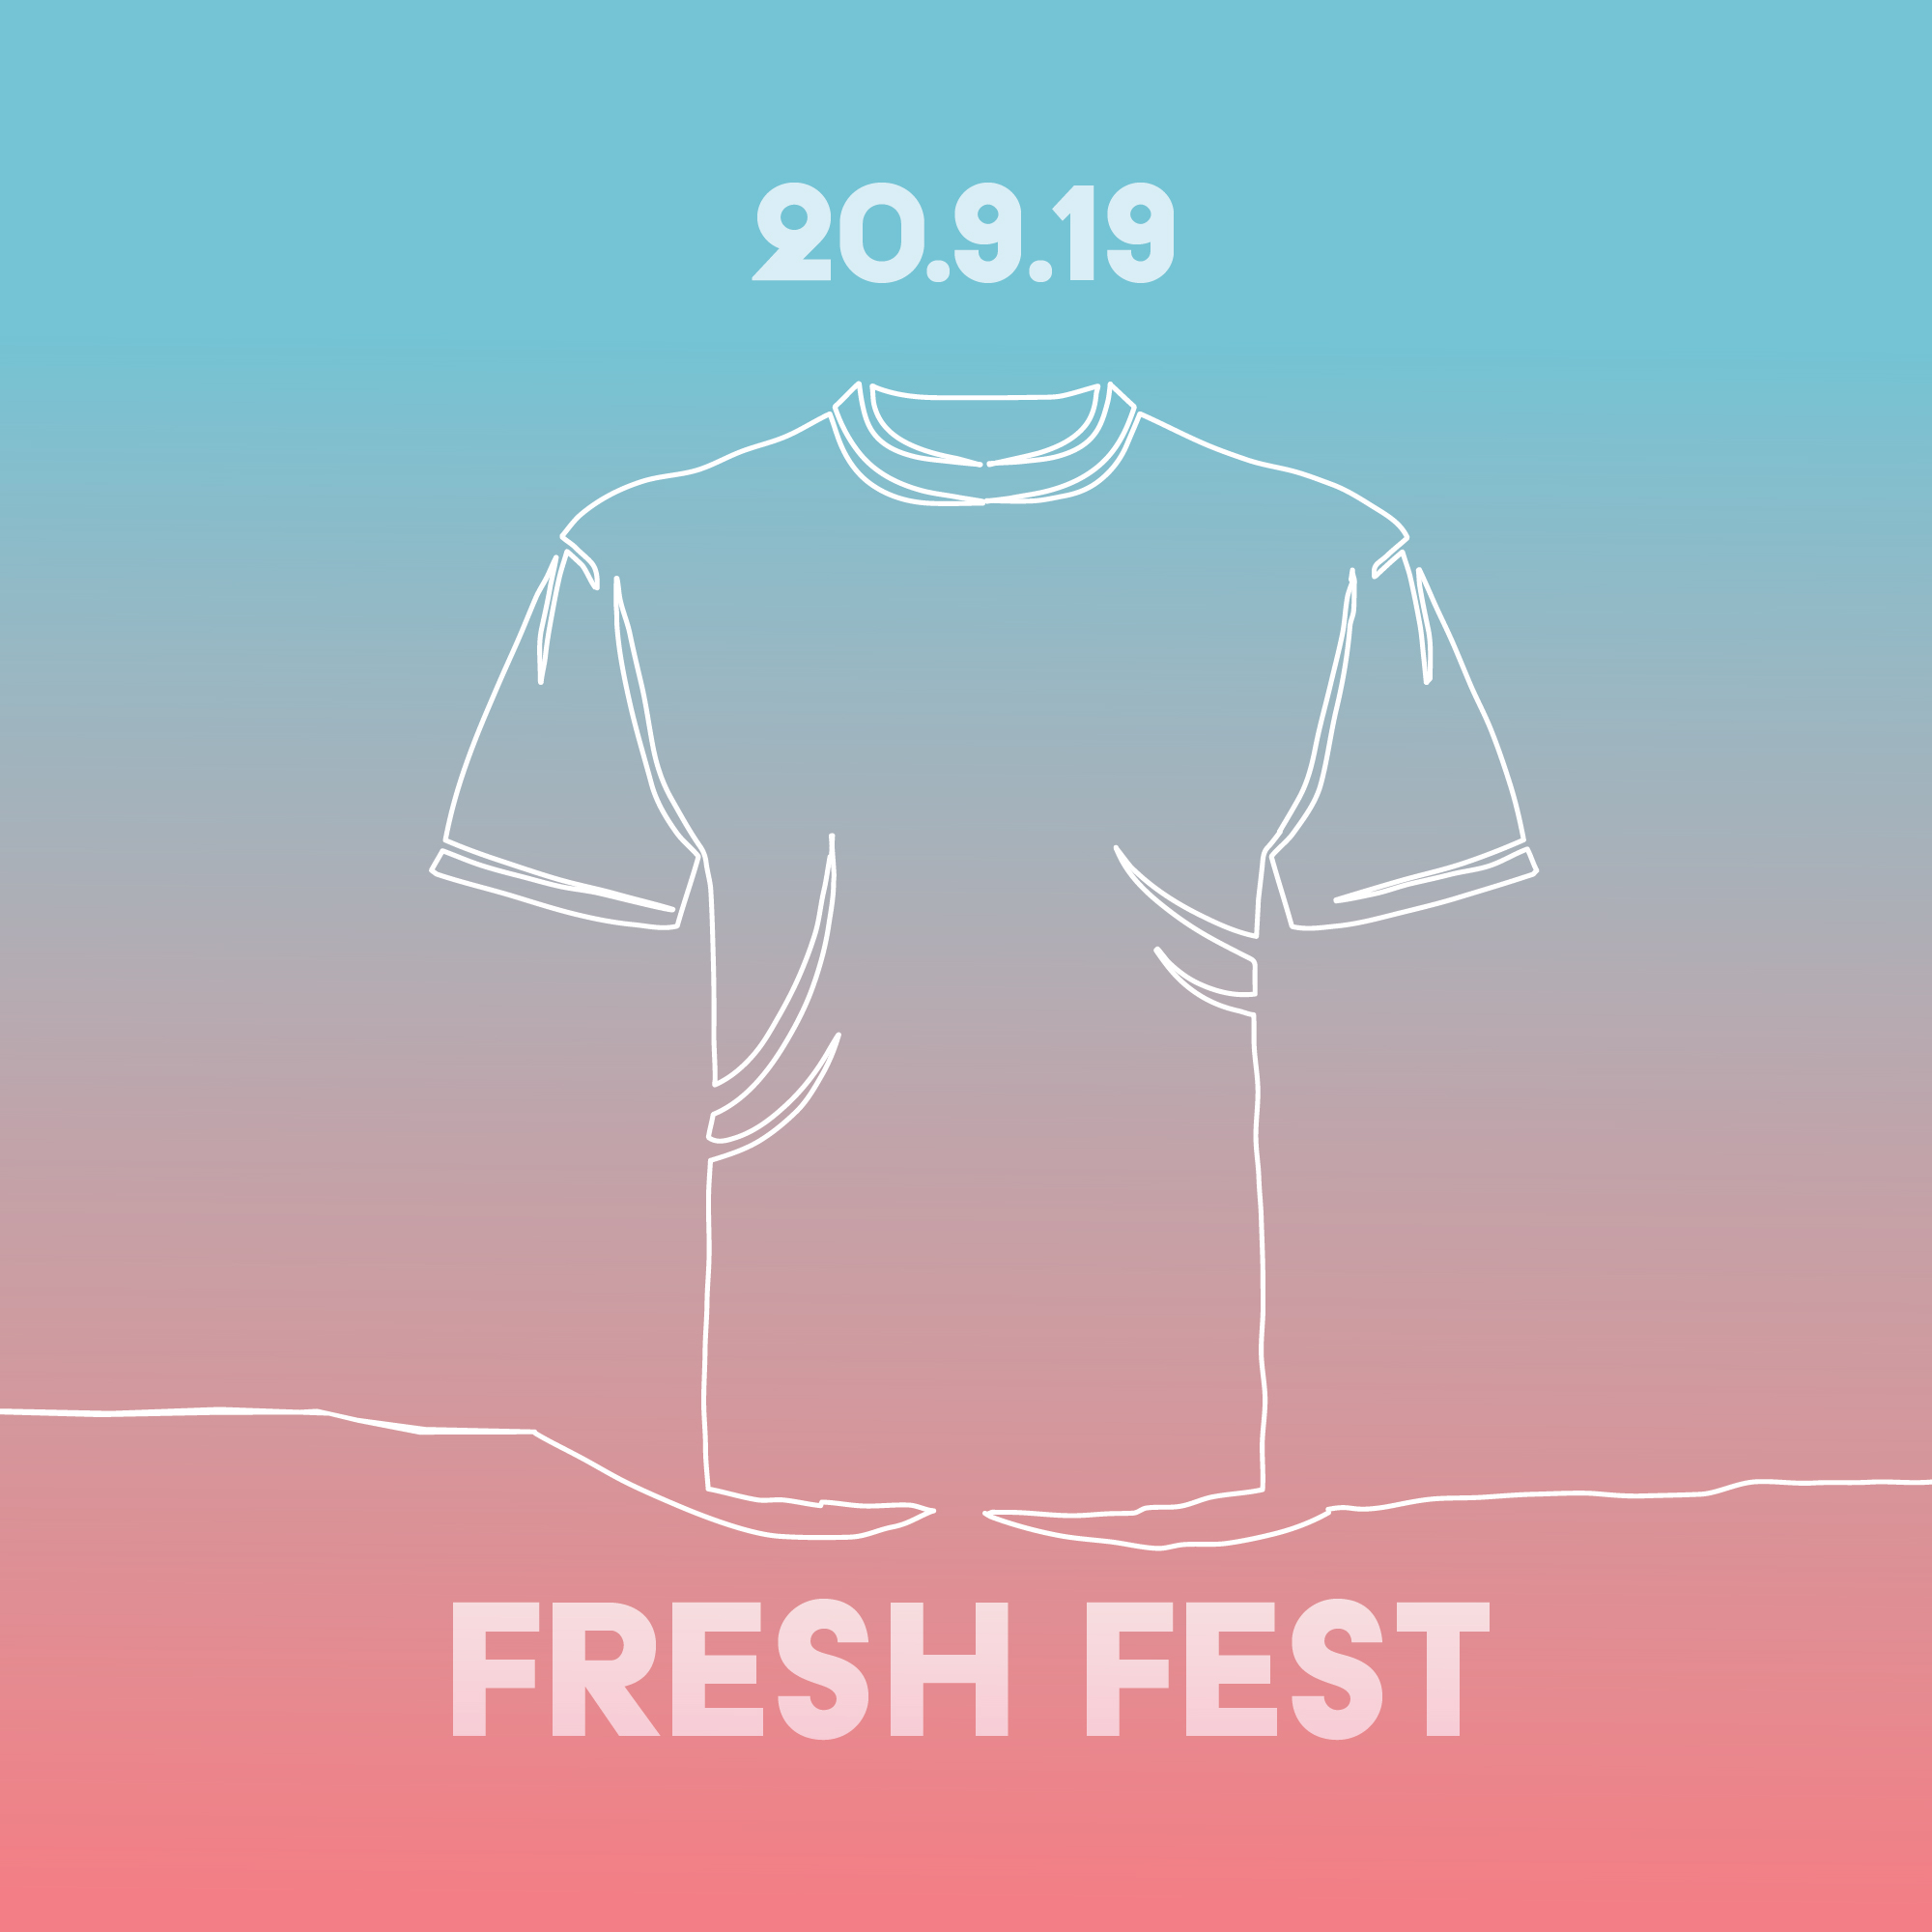 Fresh Fest - Let's get social for a facebook themed evening. Free freshbook t-shirts for the first 300 people, get there early to avoid disappointment! Music from Timmy Boomer and his Ska Band and Year of the Dog!Friday 20 September 8pmLocation RWSUEntry Doors £5 (Free with 2019 wristband)